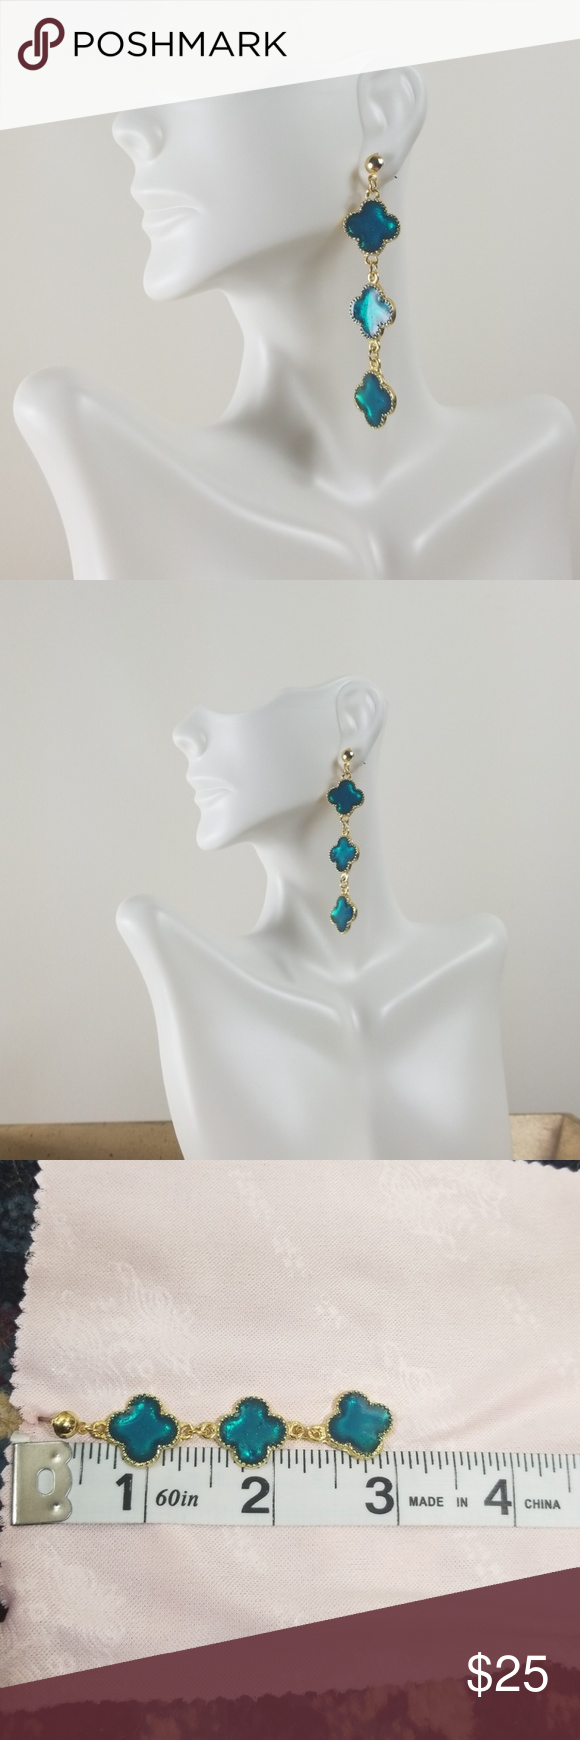 Blue clover earring Hand made Gold plated Size adjustable open back . Barcode C٣٤٠٩٨٧ No brand Jewel...